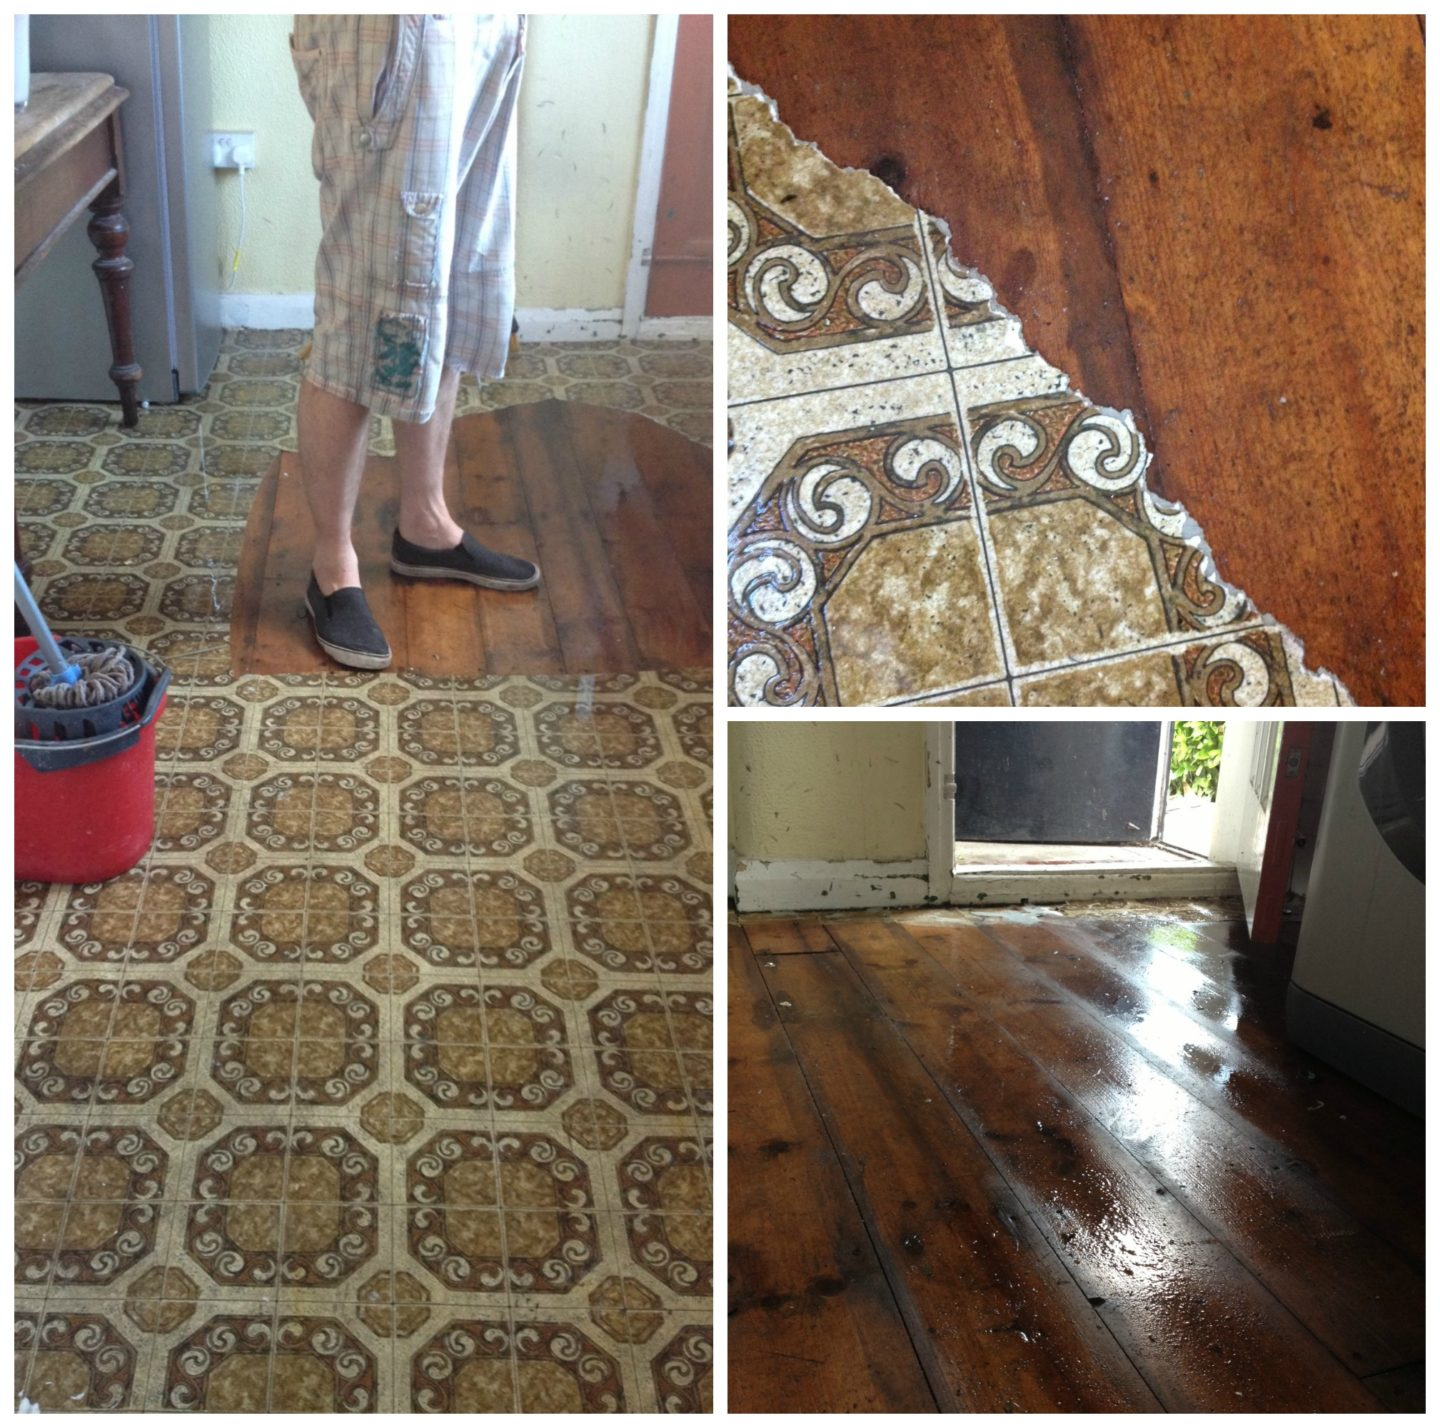 The Day Our Kitchen Flooded: Part 1